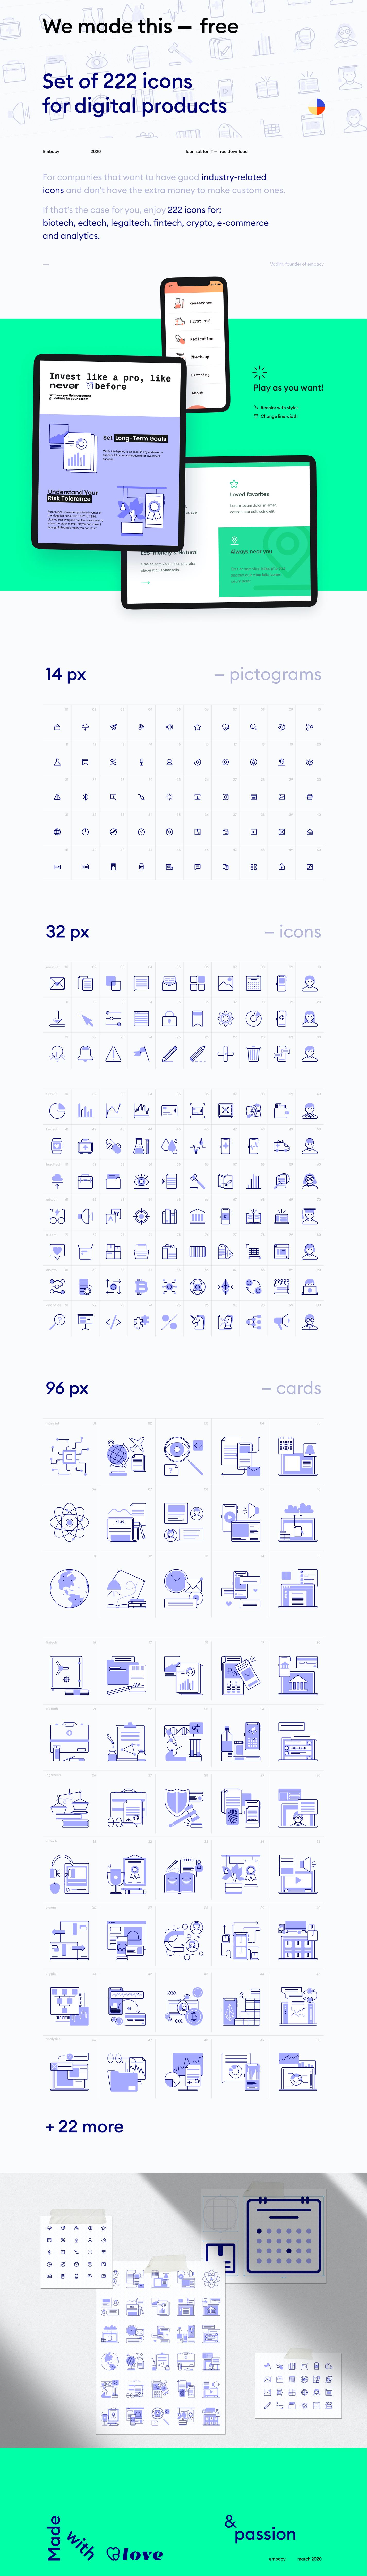 222 Free Icons for Digital Products - For companies that want to have good industry-related icons and don't have the extra money to make custom ones. If that's the case for you, enjoy 222 icons for: biotech, edtech, legaltech, fintech, crypto, e-commerce and analytics.